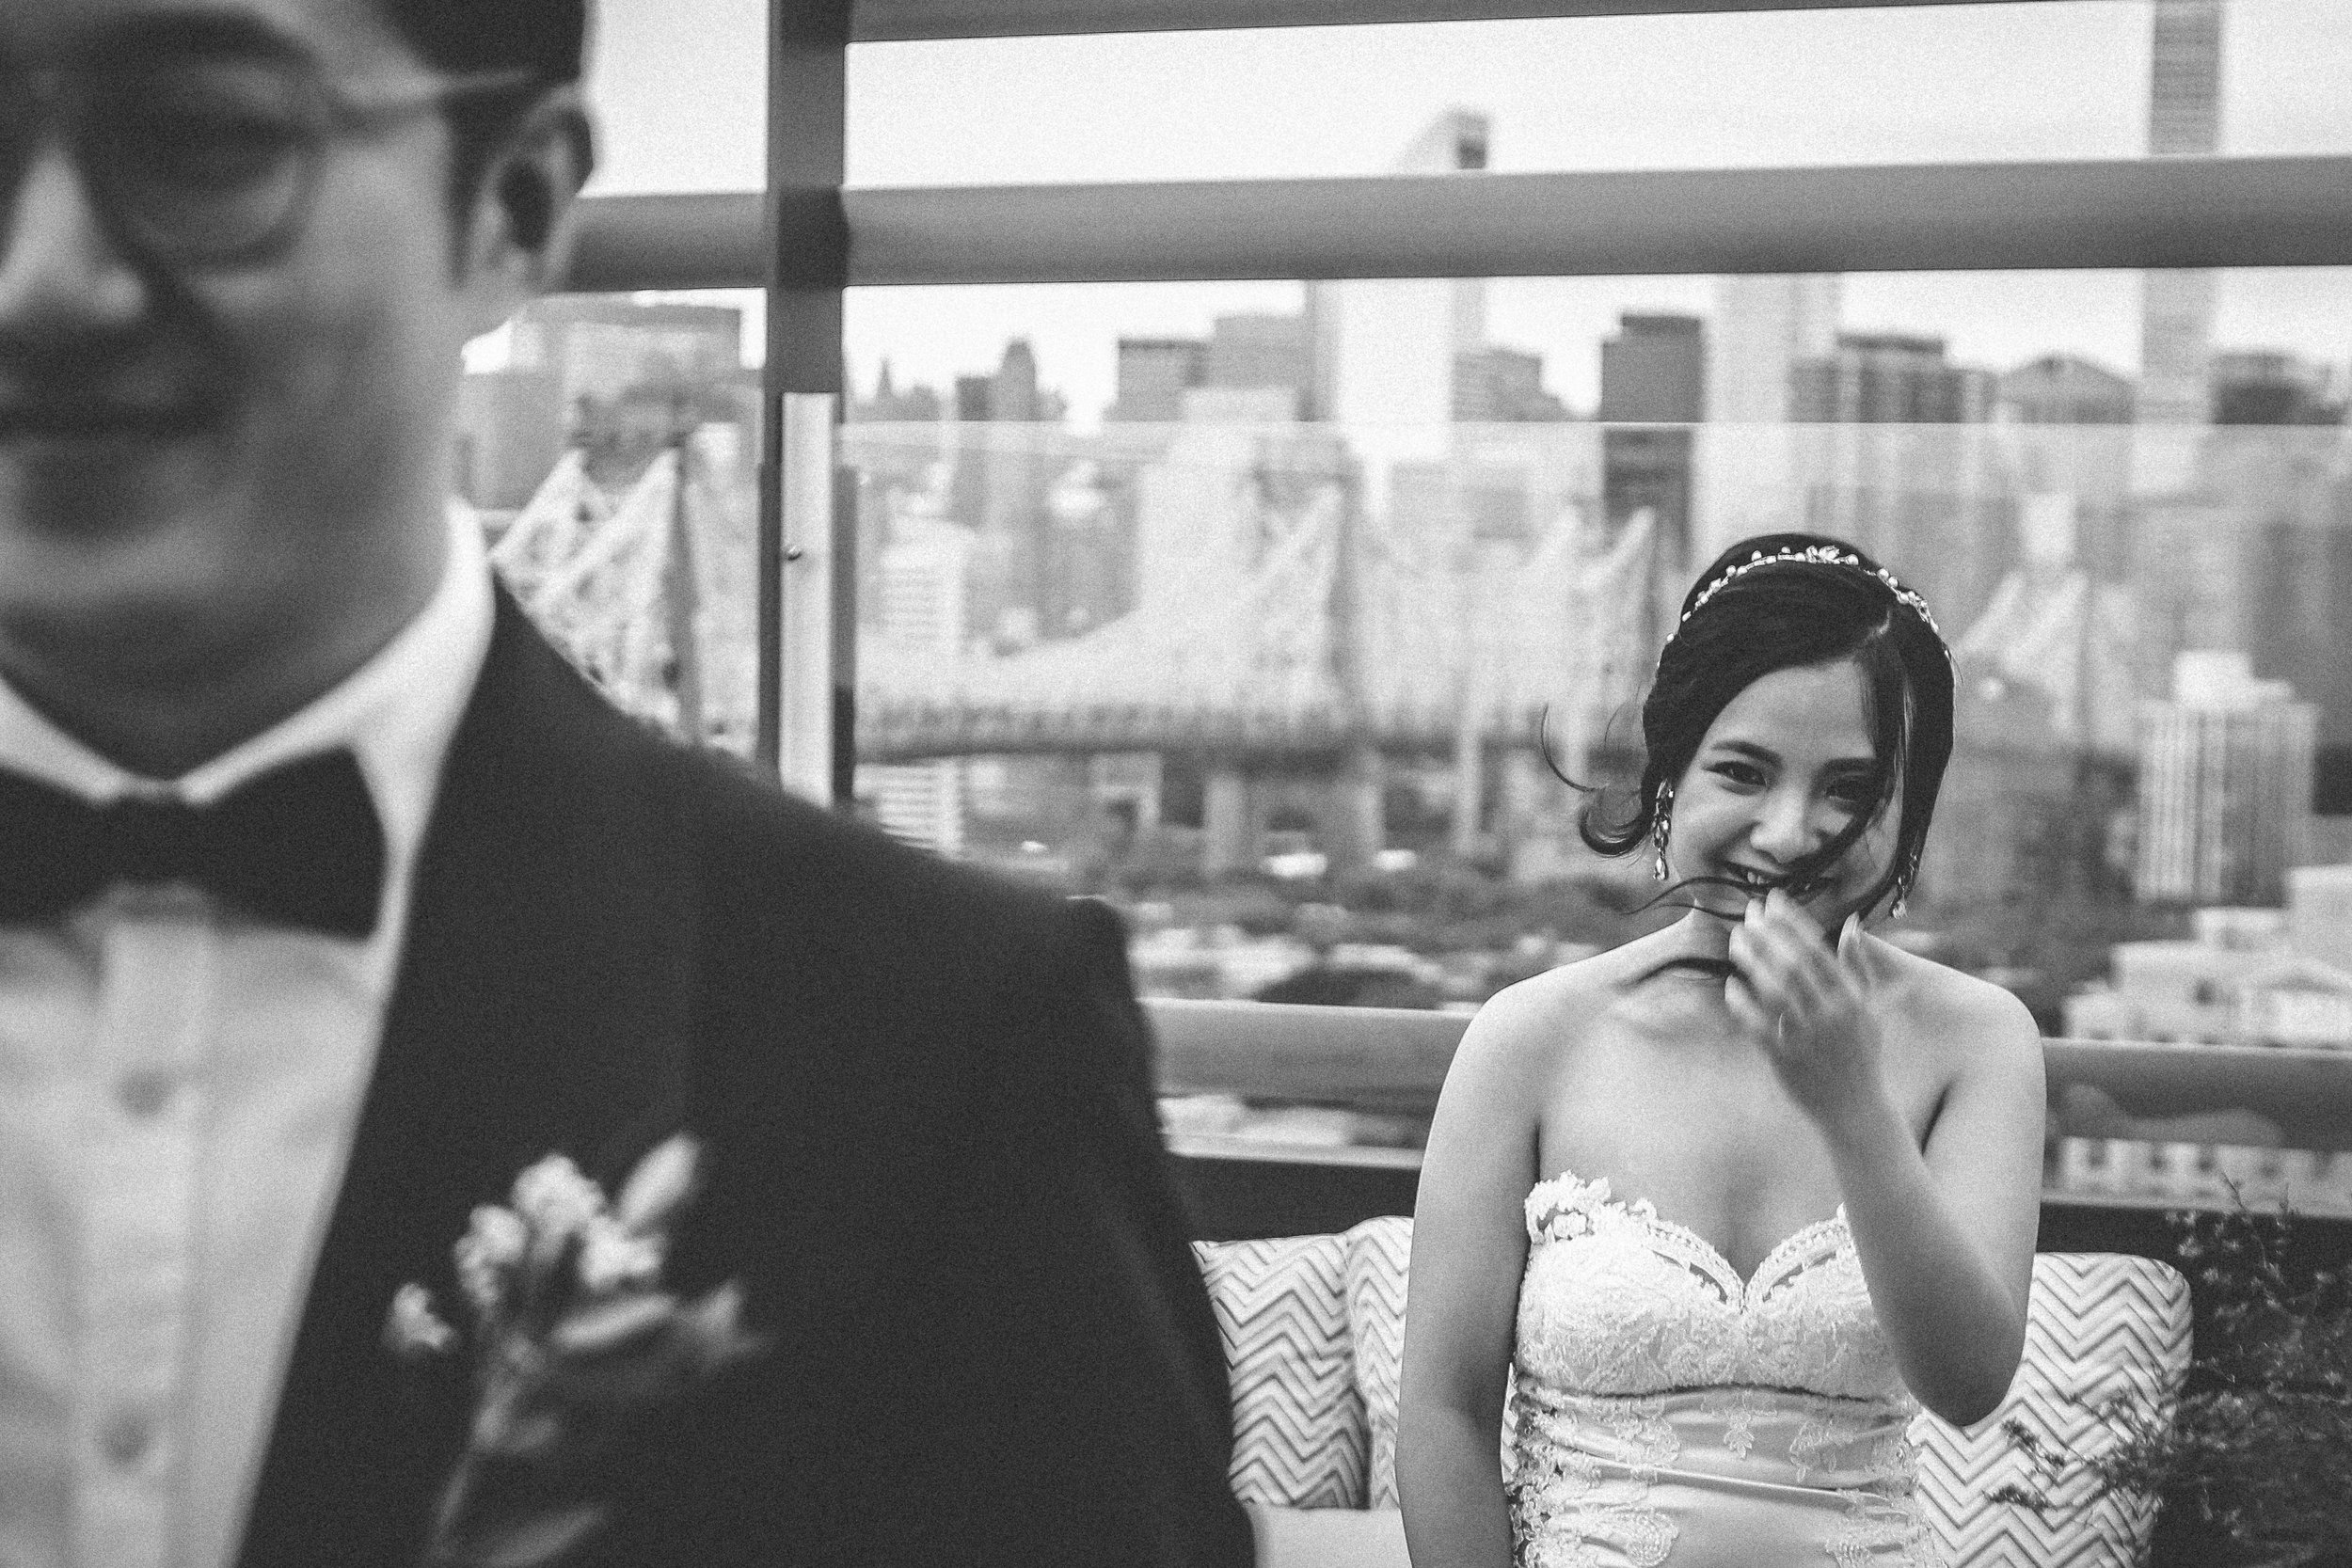 first look pictures, Brooklyn wedding photographer - Boro Hotel